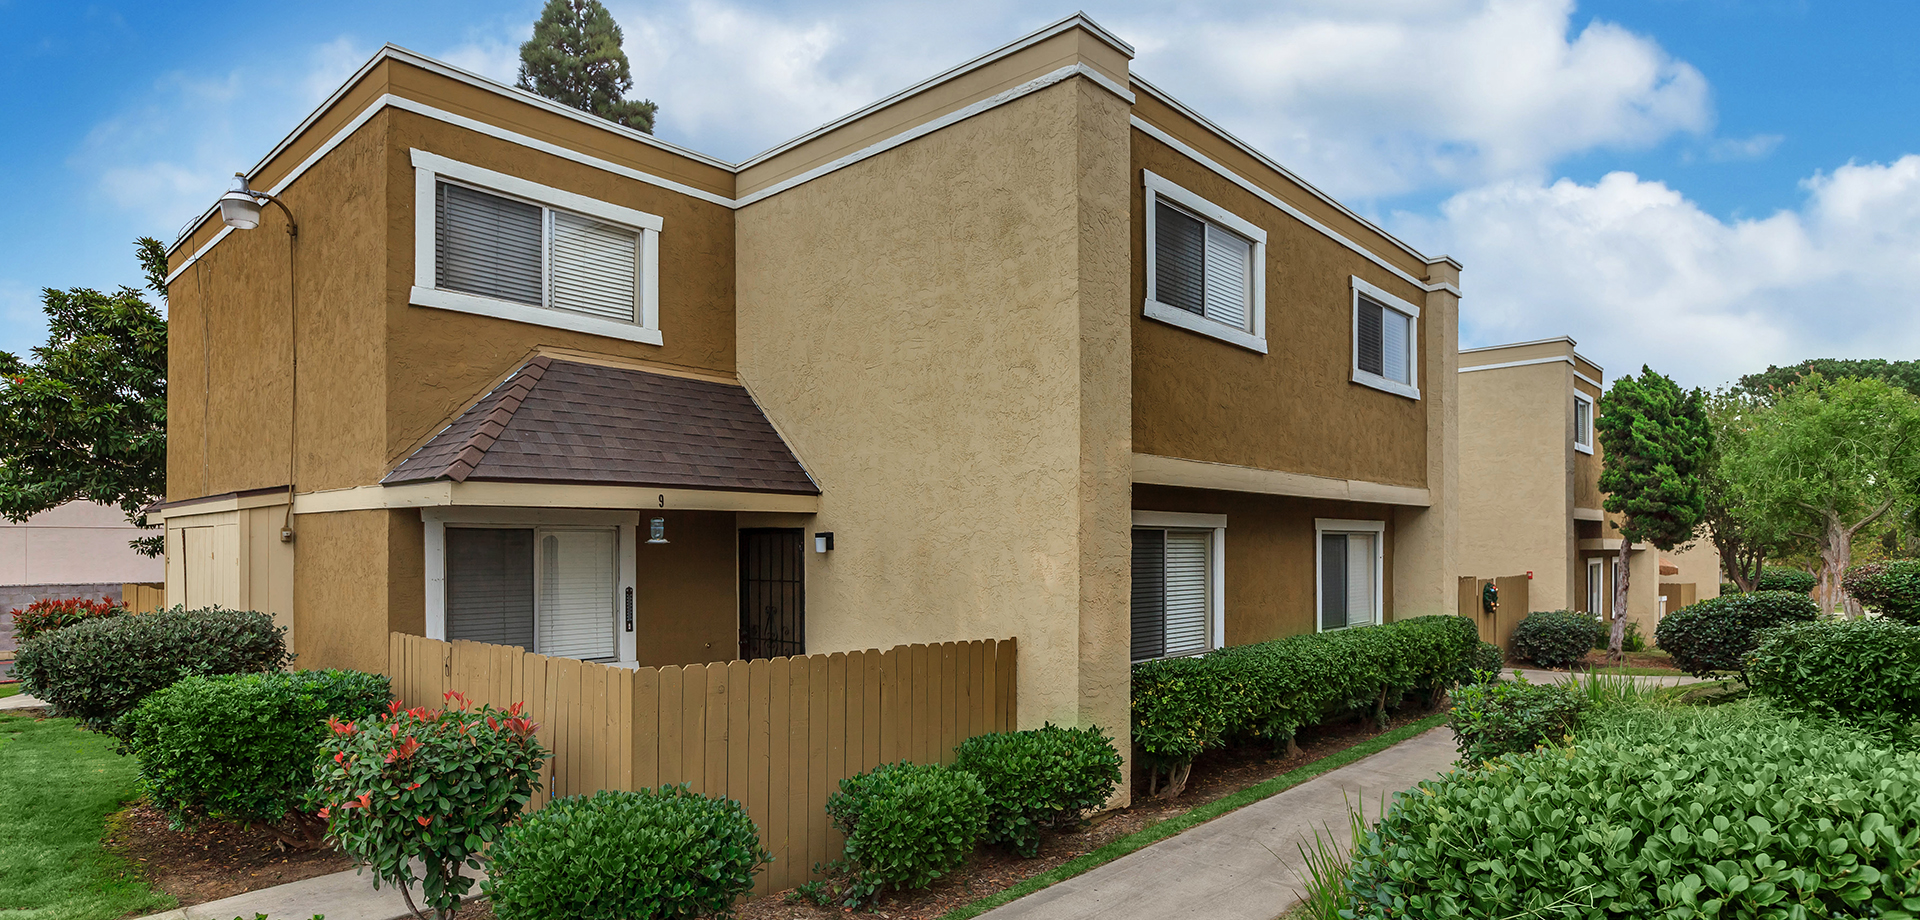 3 Bedroom Apartments In Anaheim Ca 28 Images 3 Bedroom